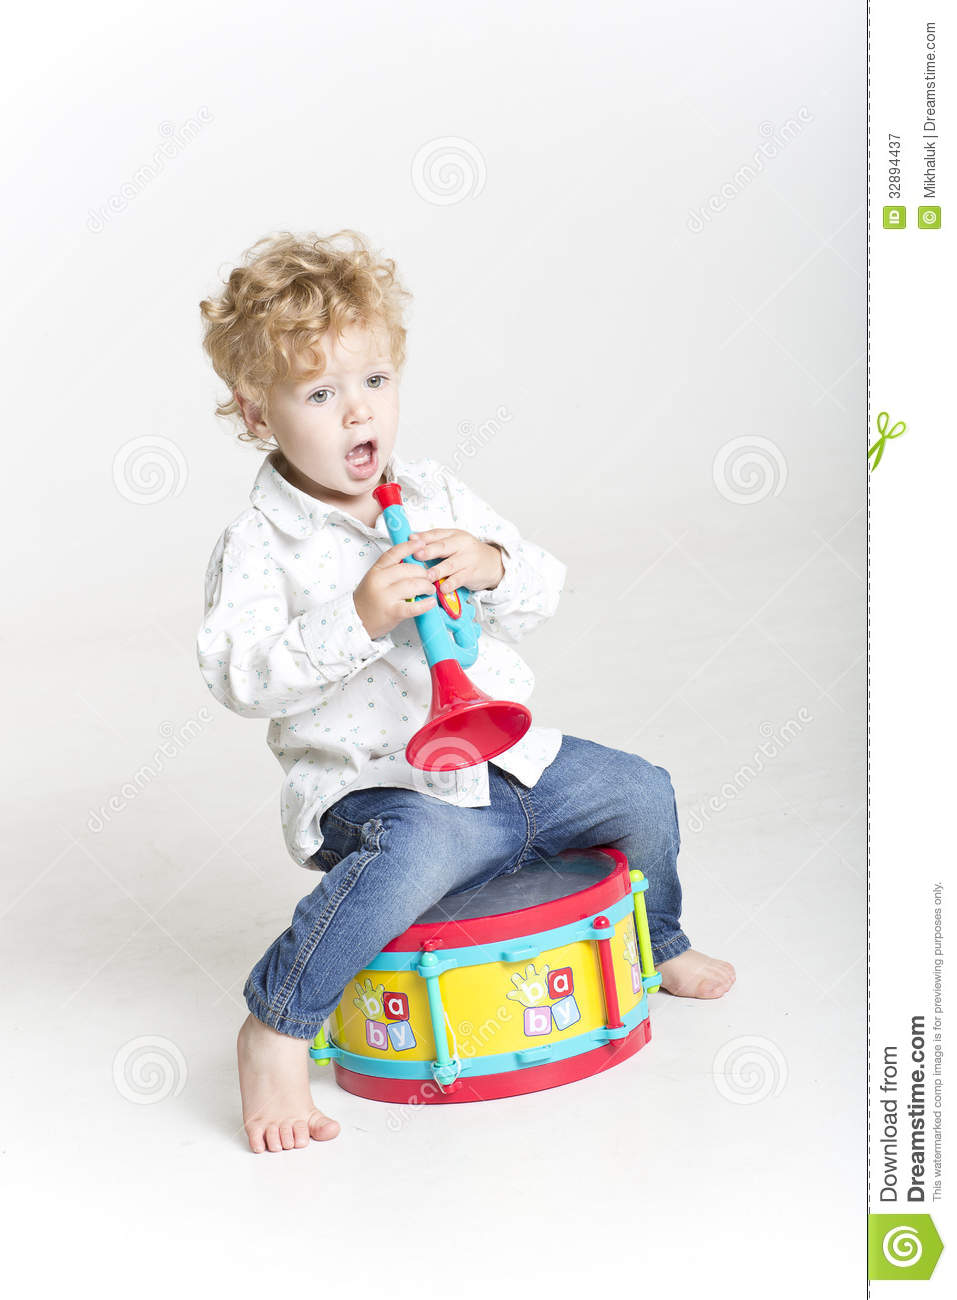 Musical Toys For Toddlers Boys : Toddler is playing with toy musical instruments on white